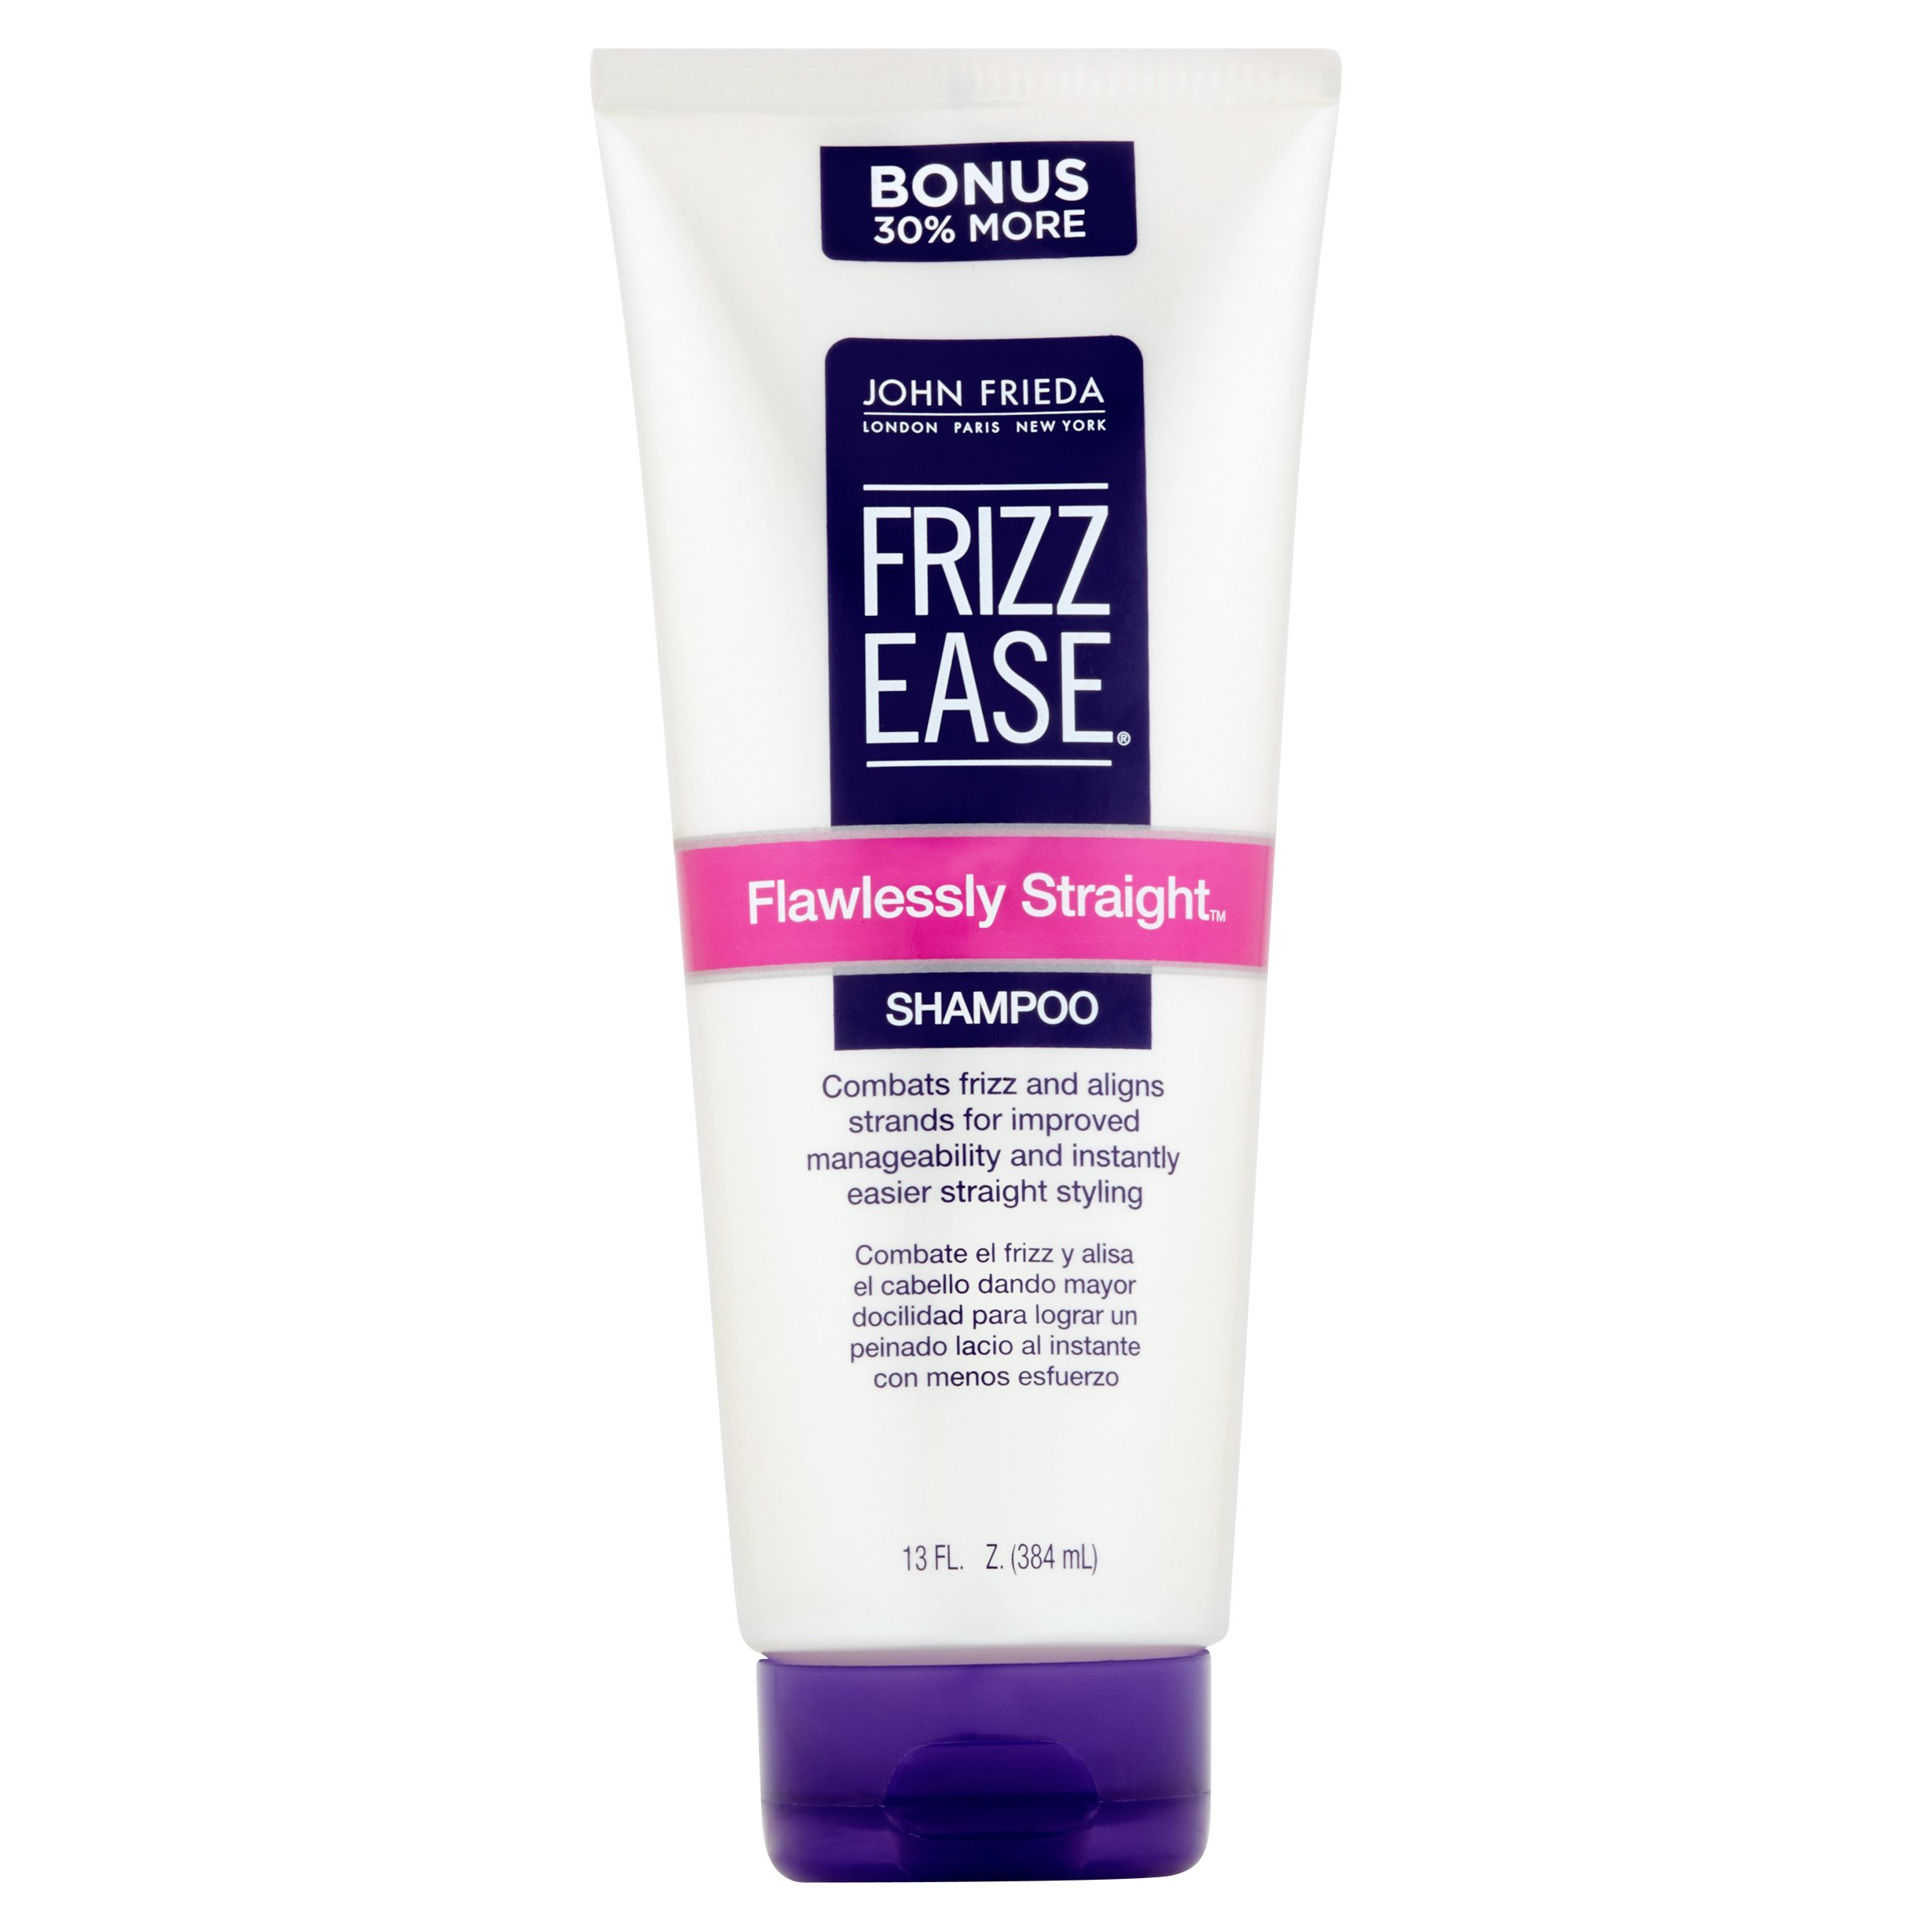 John Frieda Frizz Ease Flawlessly Straight Shampoo, 13 fl oz